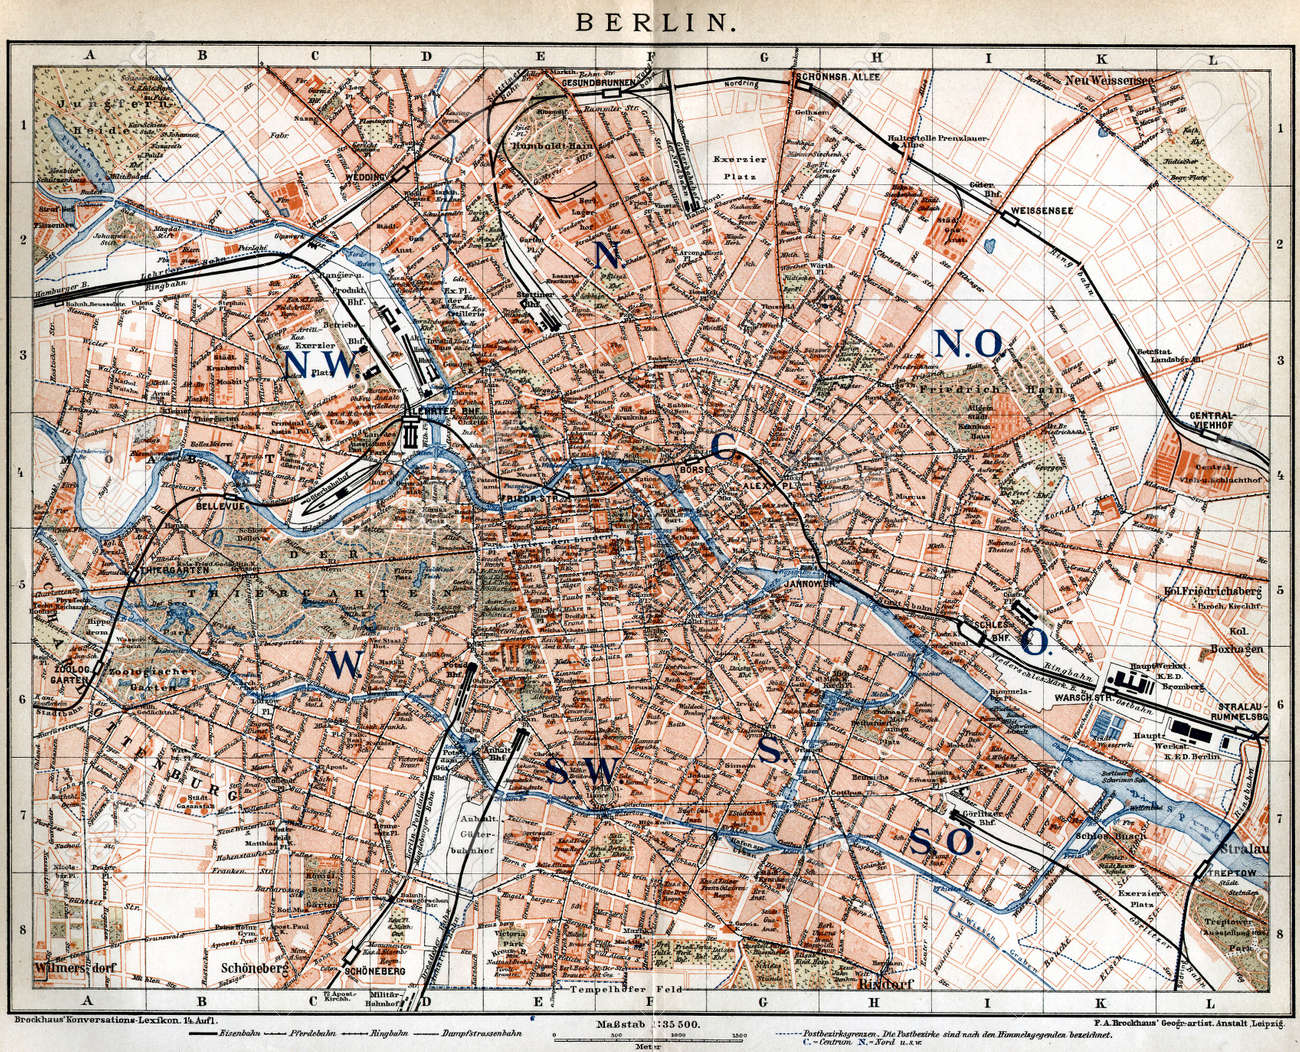 Berlin Vintage Map Stock Photo Picture And Royalty Free Image - Vintage map berlin